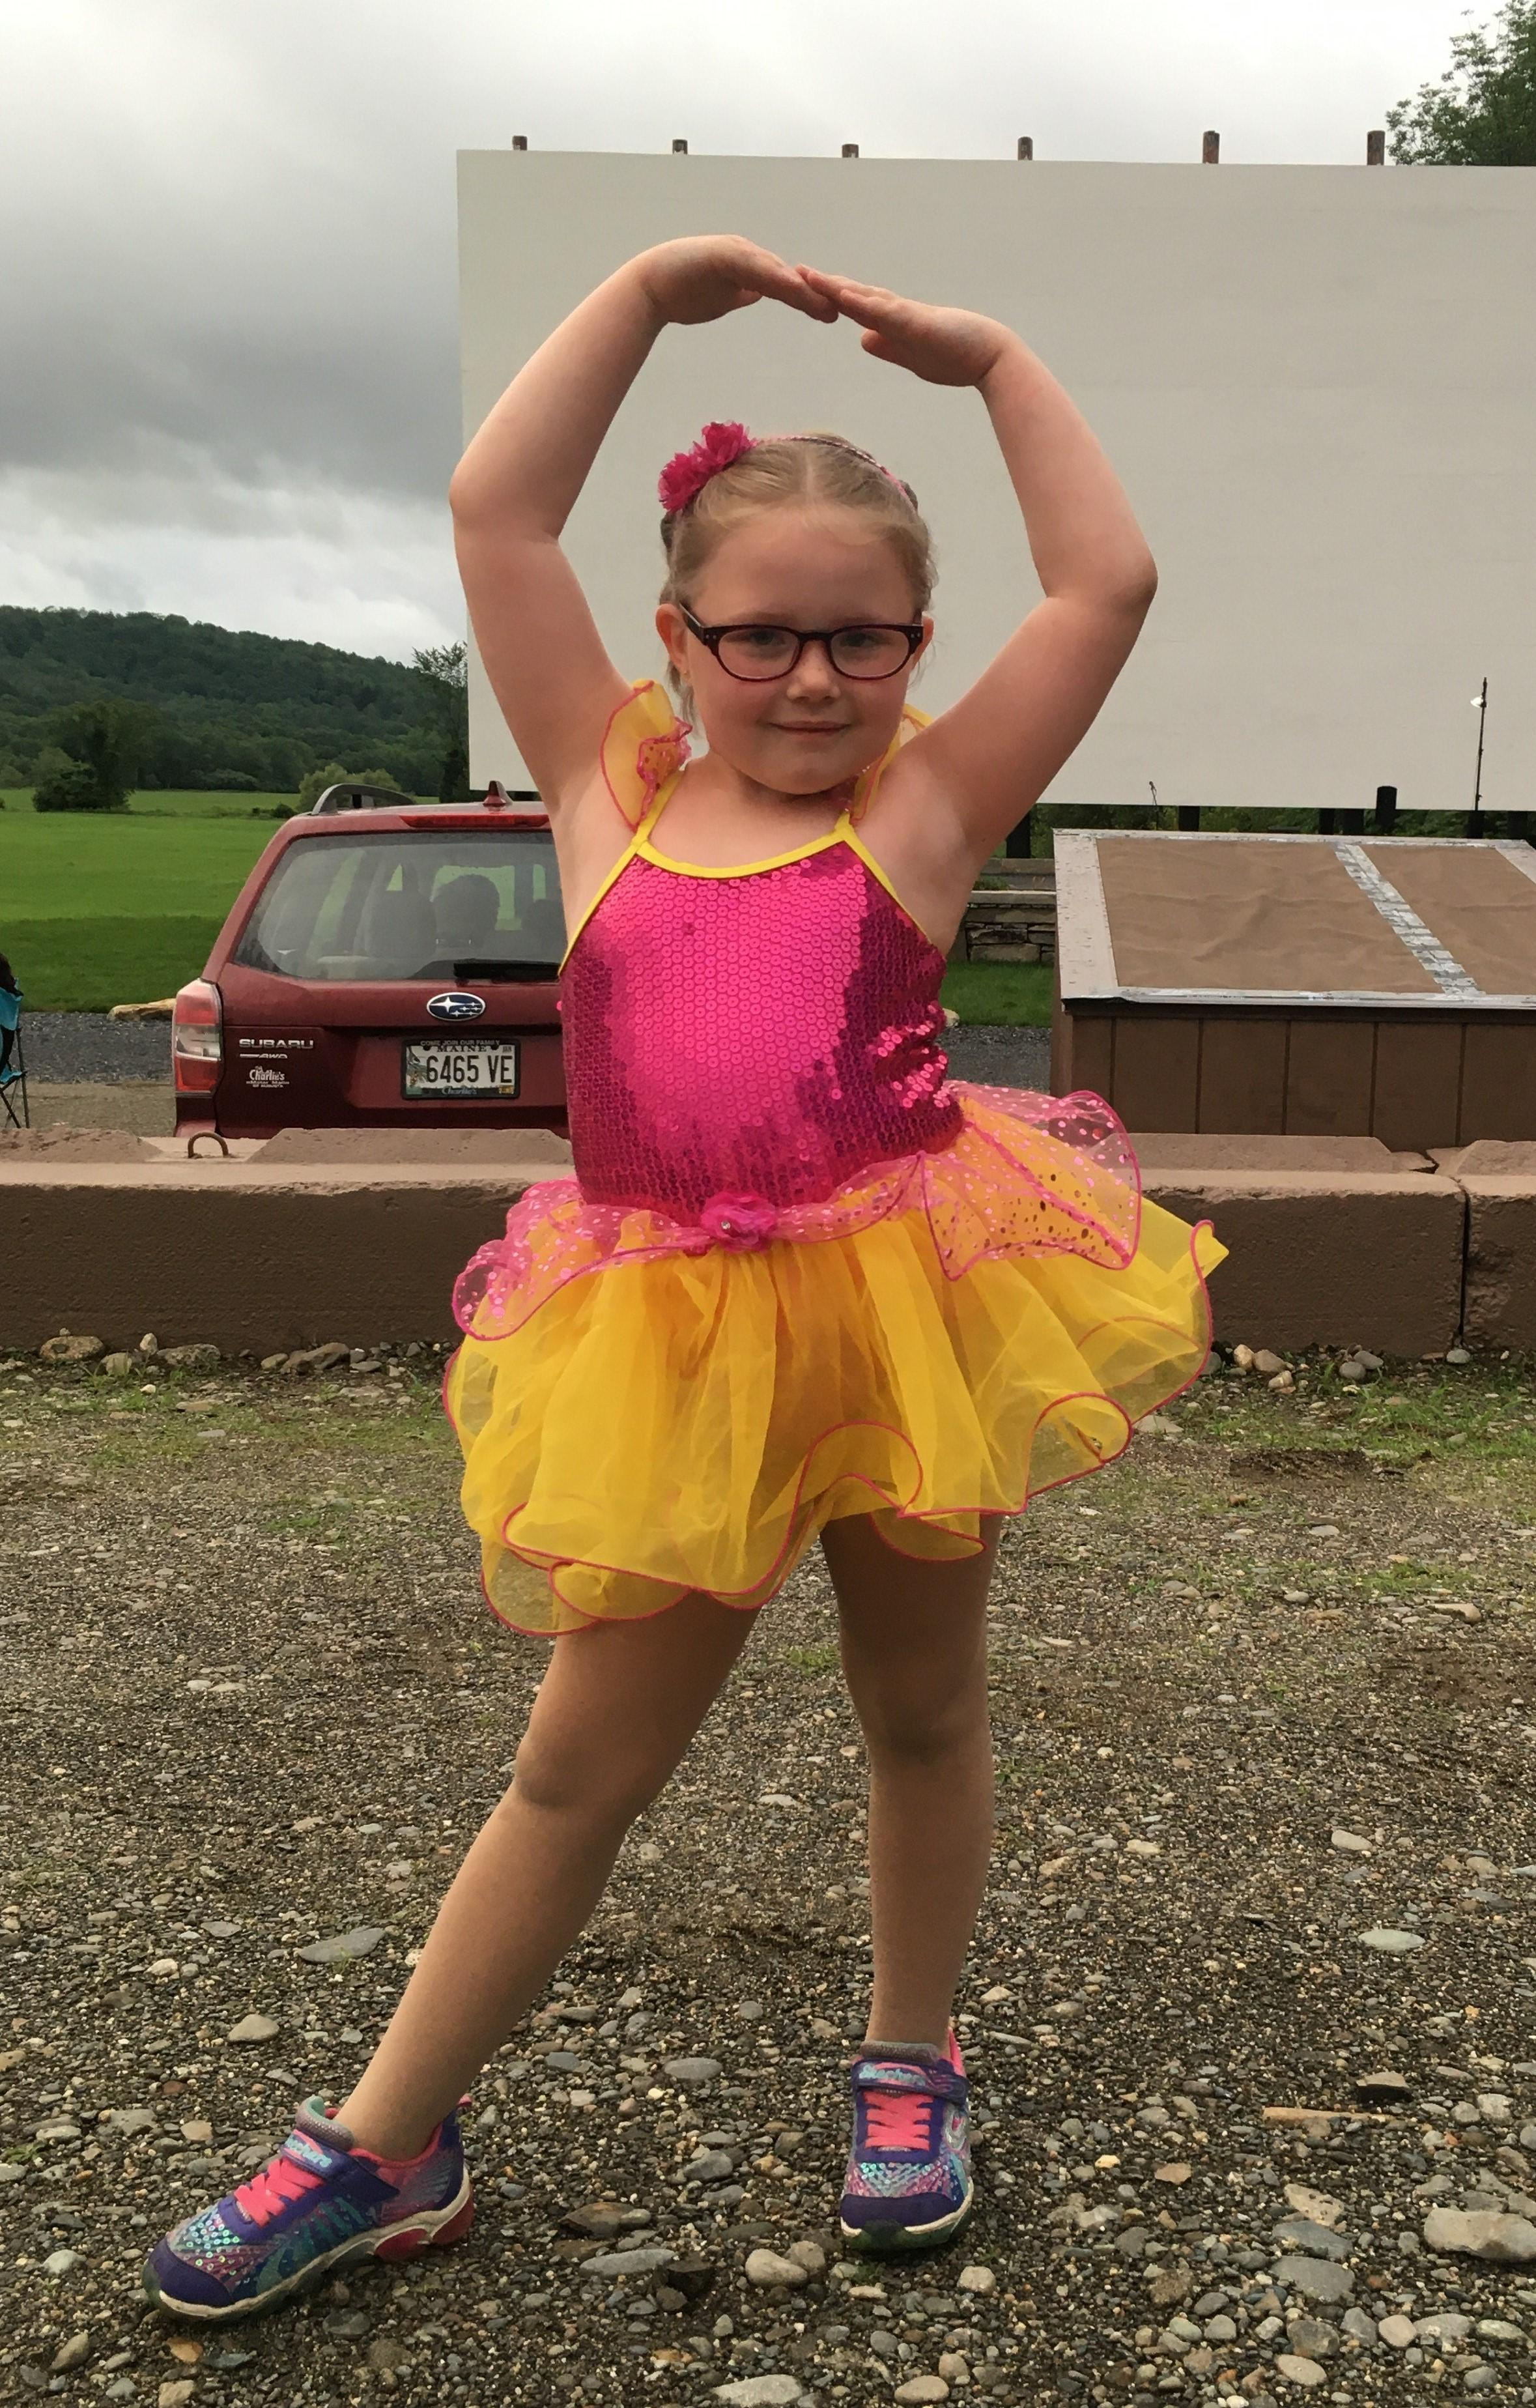 Peyton Ladd was able to participate in dance classes because of generous donations to the Hope Fund.